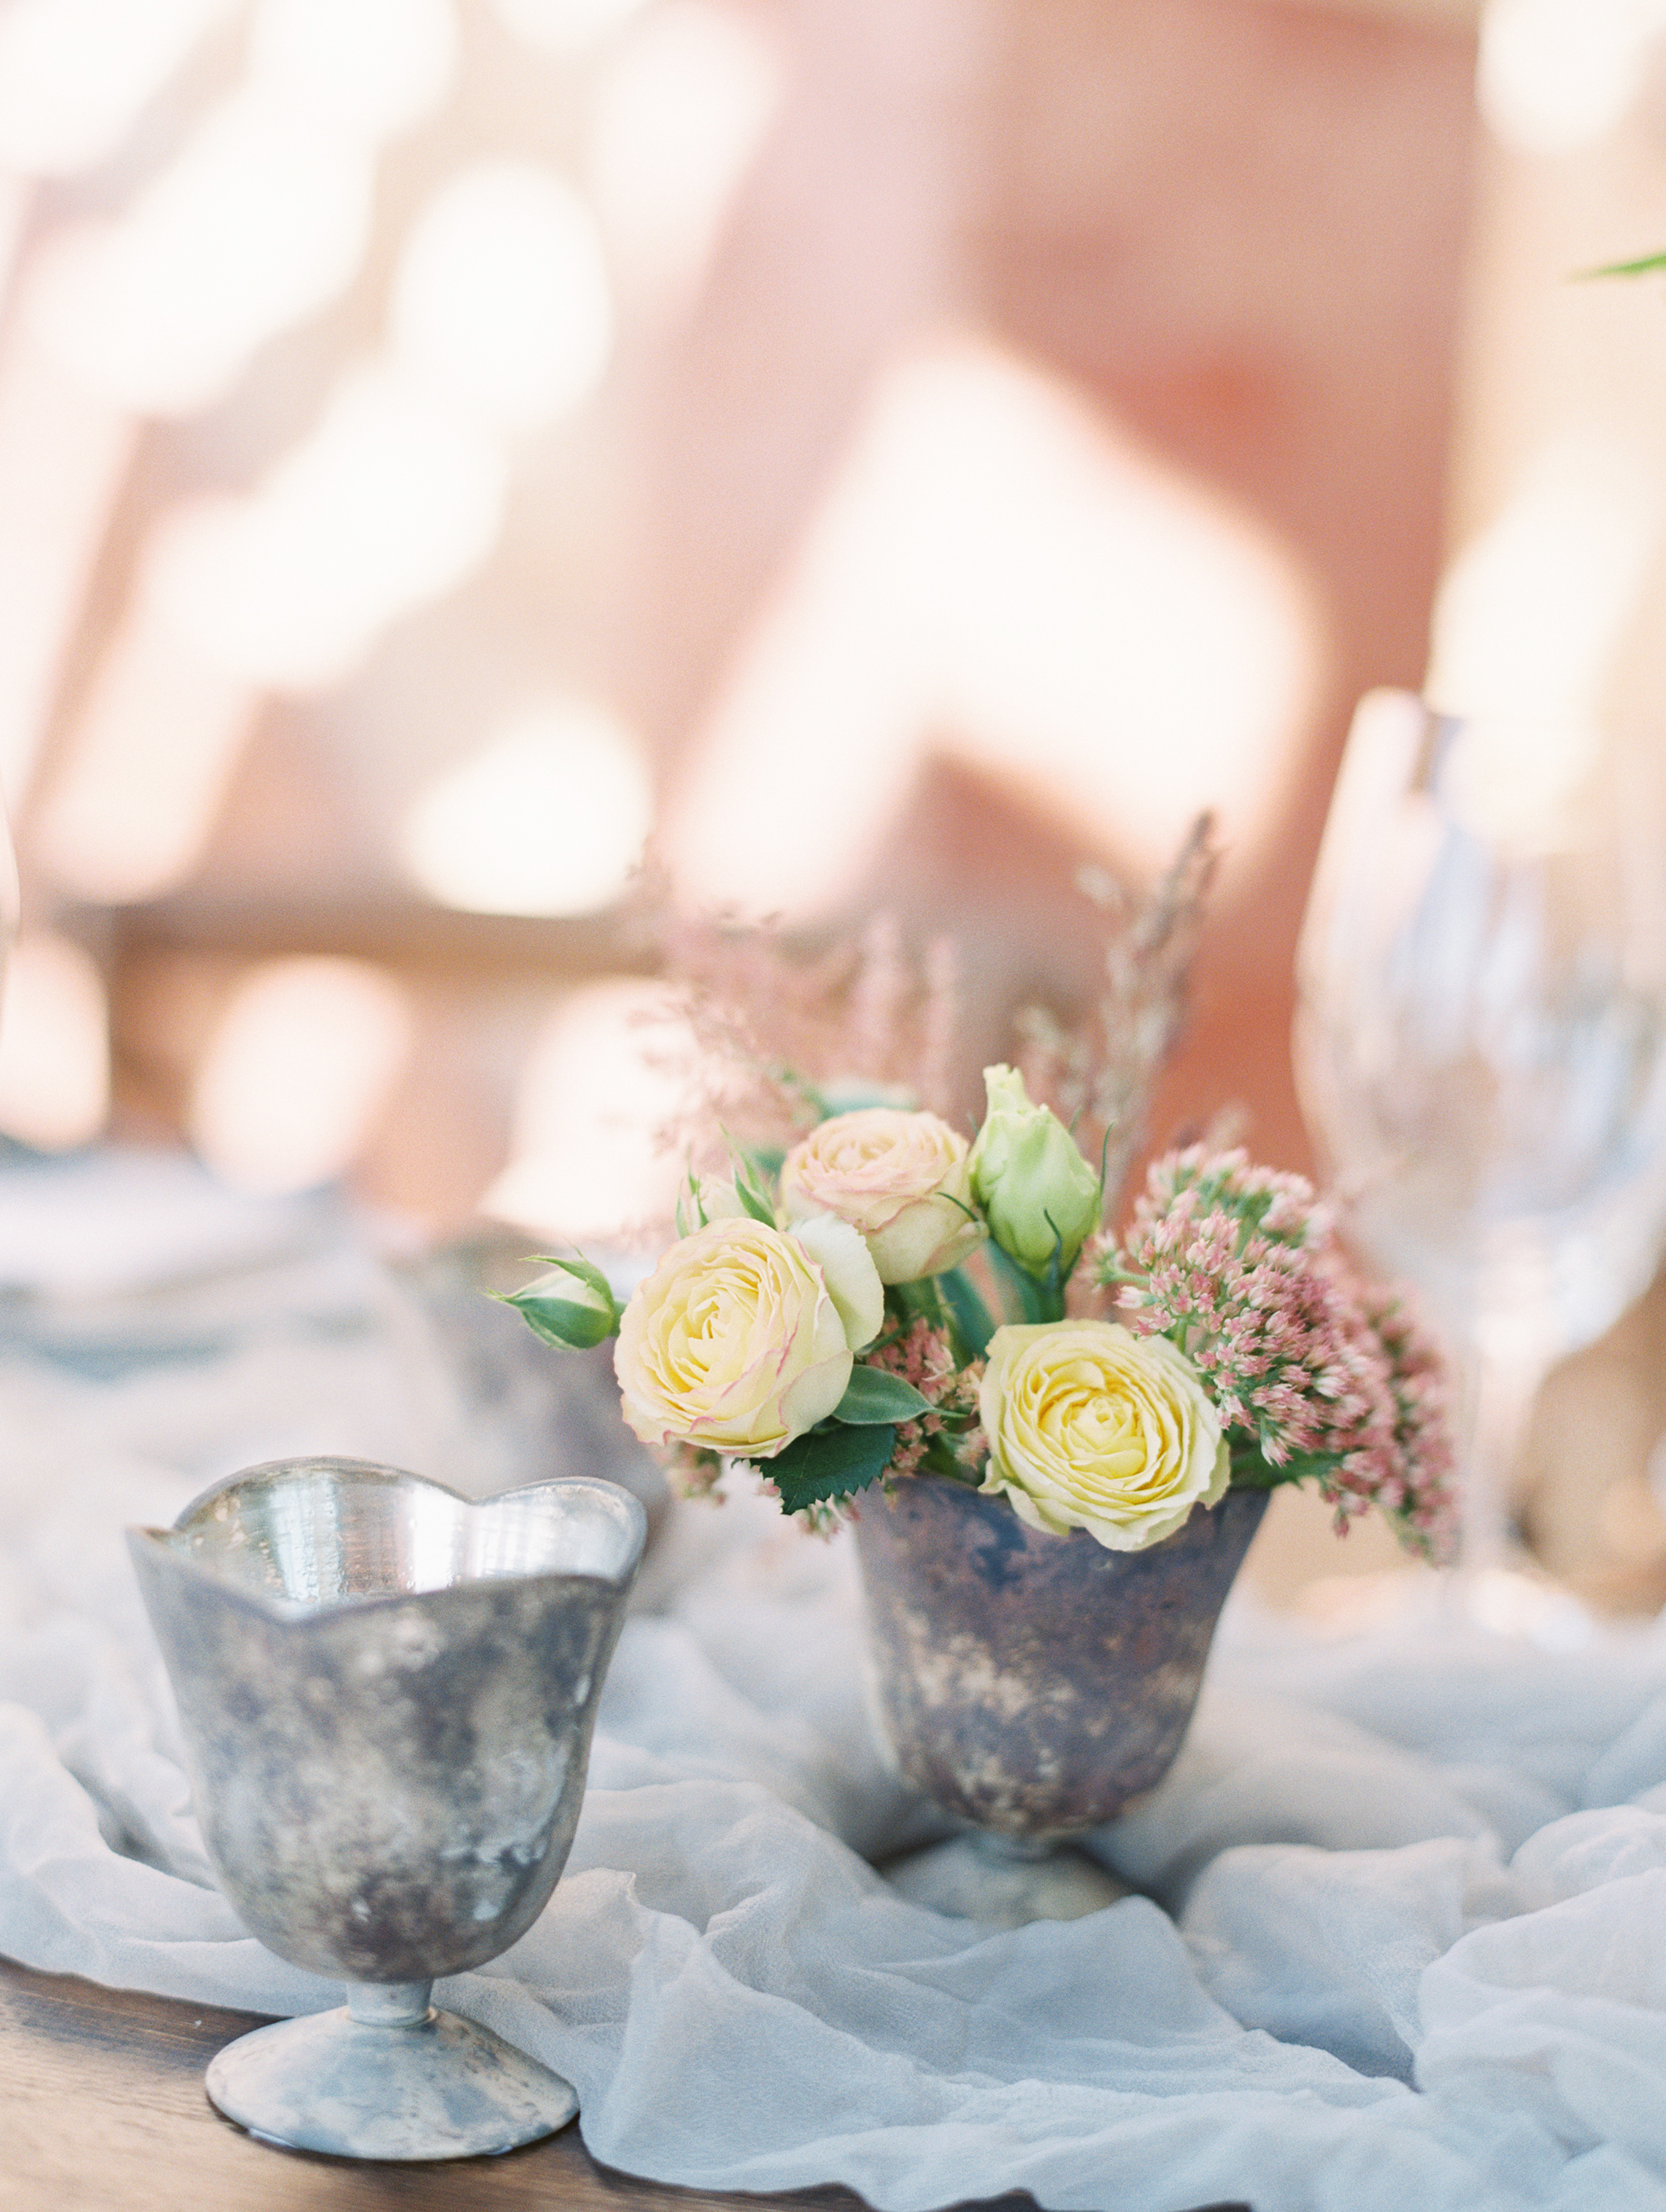 Wedding Details Inspired by Italy | Michelle Leo Events | Utah Event Planner and Designer | D'Arcy  Benincosa Photography